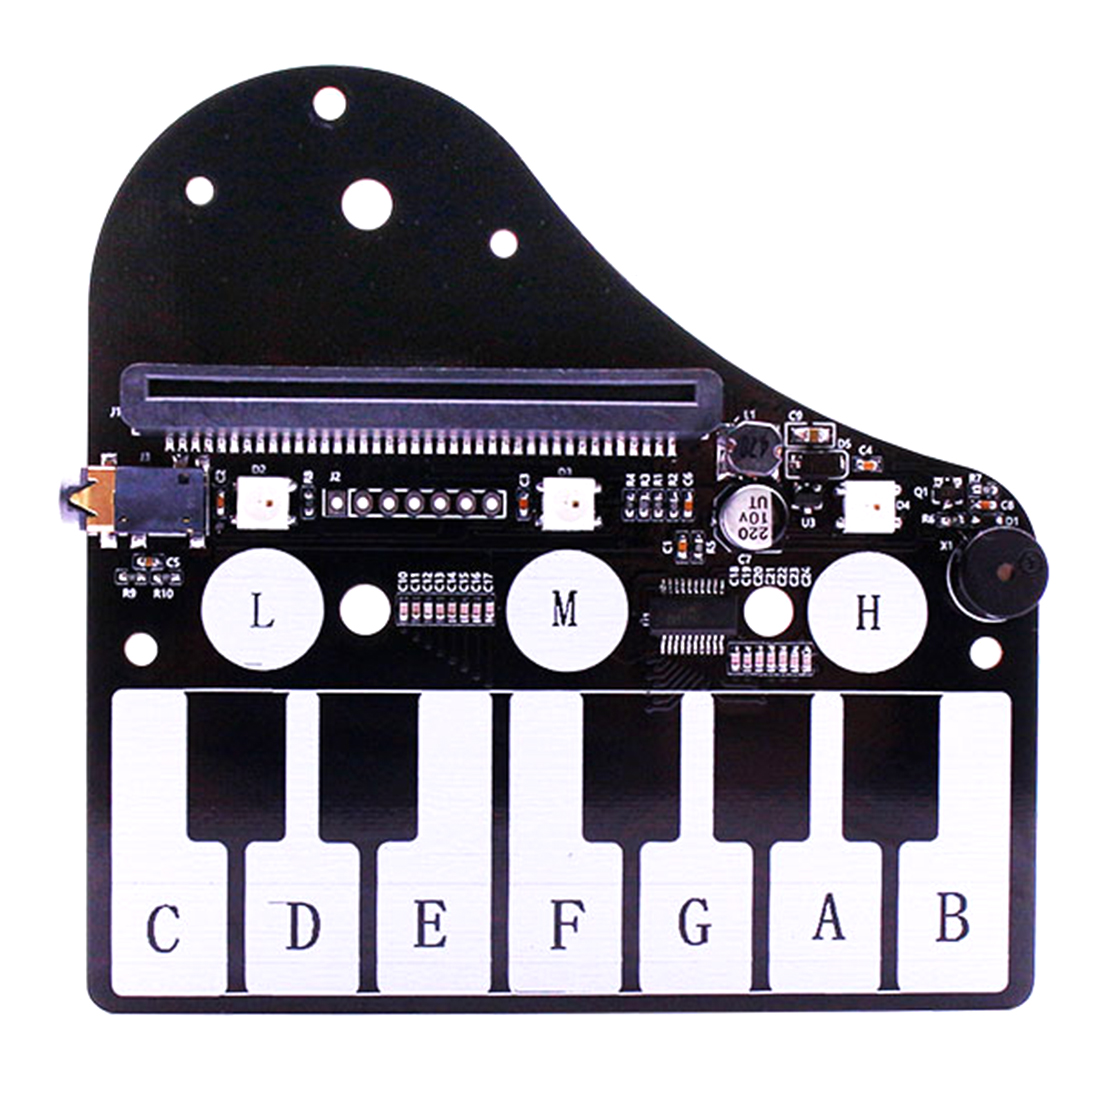 2019 Hot Sale Piano Shape Expansion Board Music Development Board With RGB Colored Light Buzzer For Microbit Children Kids Toy